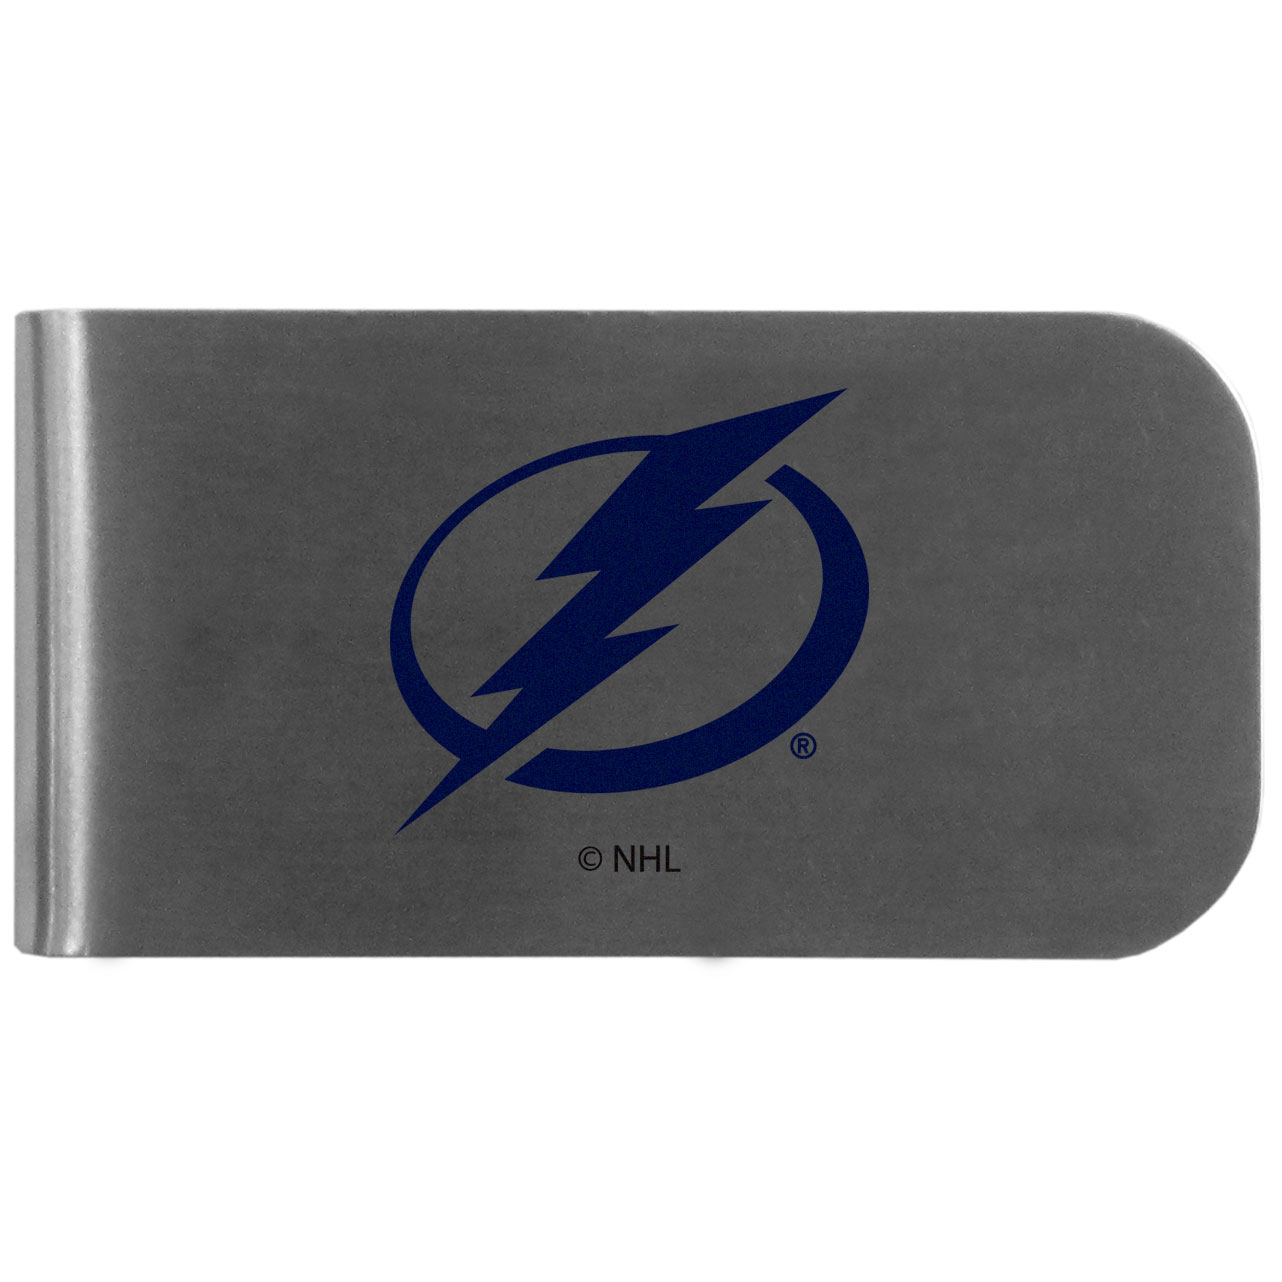 Tampa Bay Lightning Logo Bottle Opener Money Clip - This unique money clip features a classic, brushed-metal finish with a handy bottle opener feature on the back. The clip has the Tampa Bay Lightning logo expertly printed on the front of the clip.